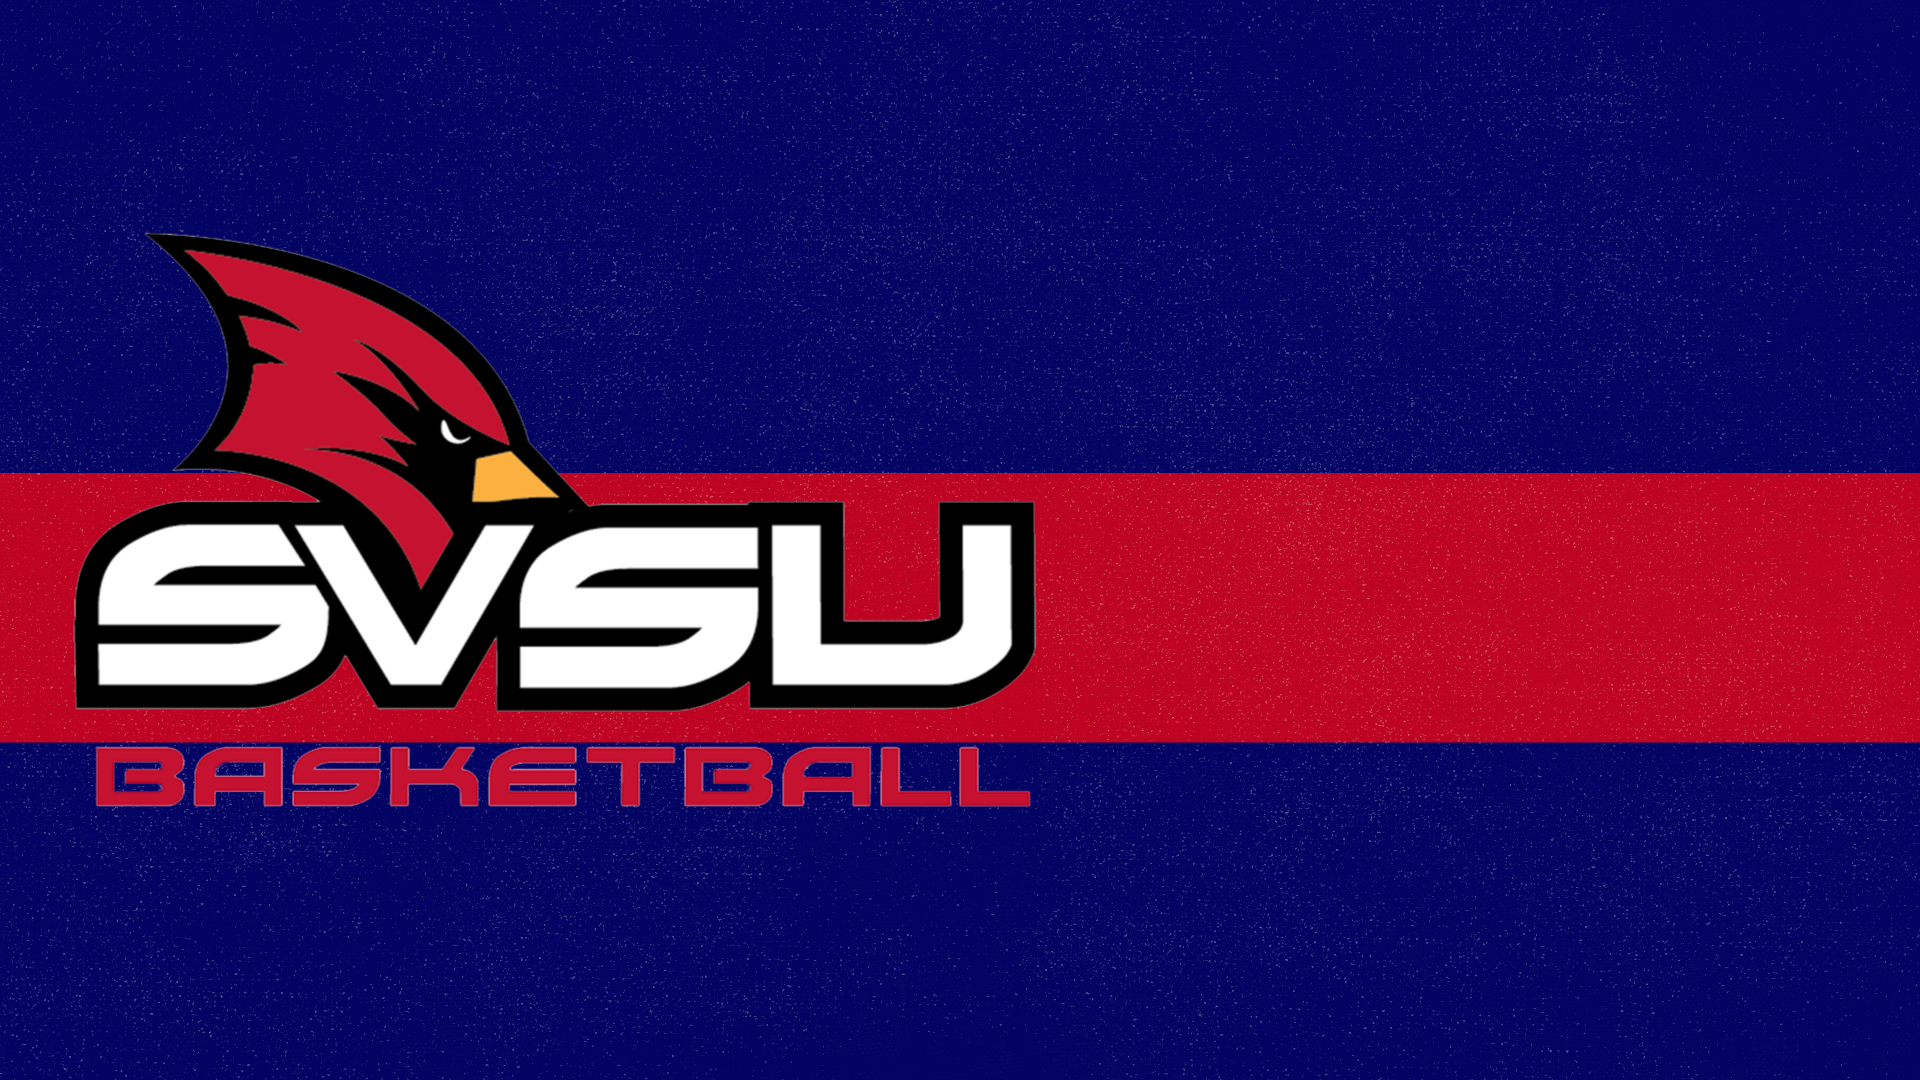 SVSU Men's Basketball announces 2020-2021 recruiting class